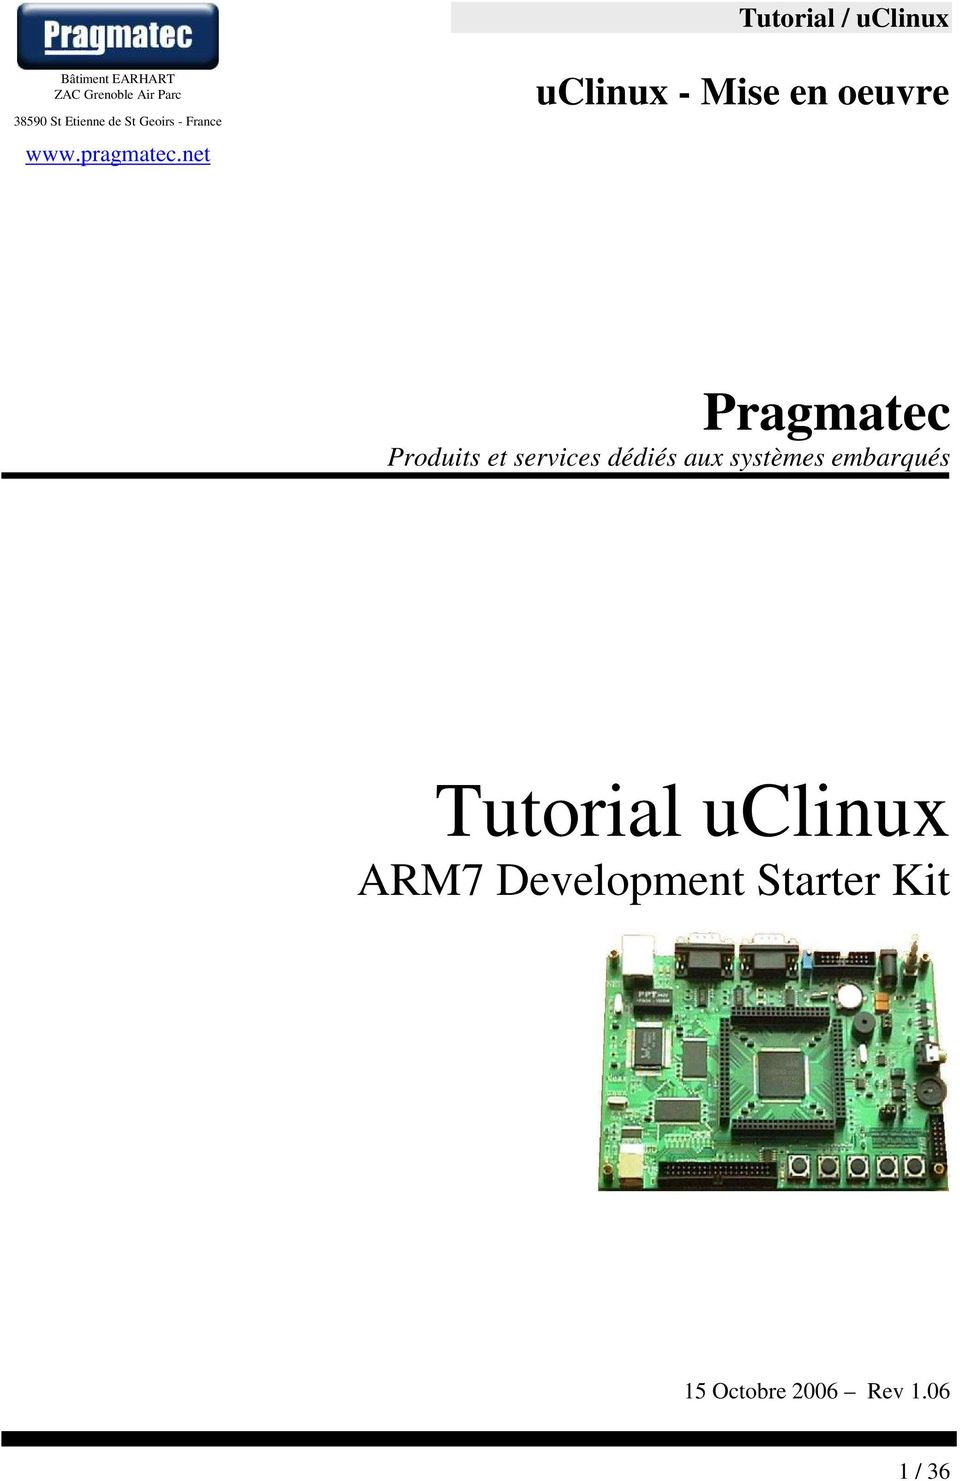 Tutorial uclinux ARM7 Development